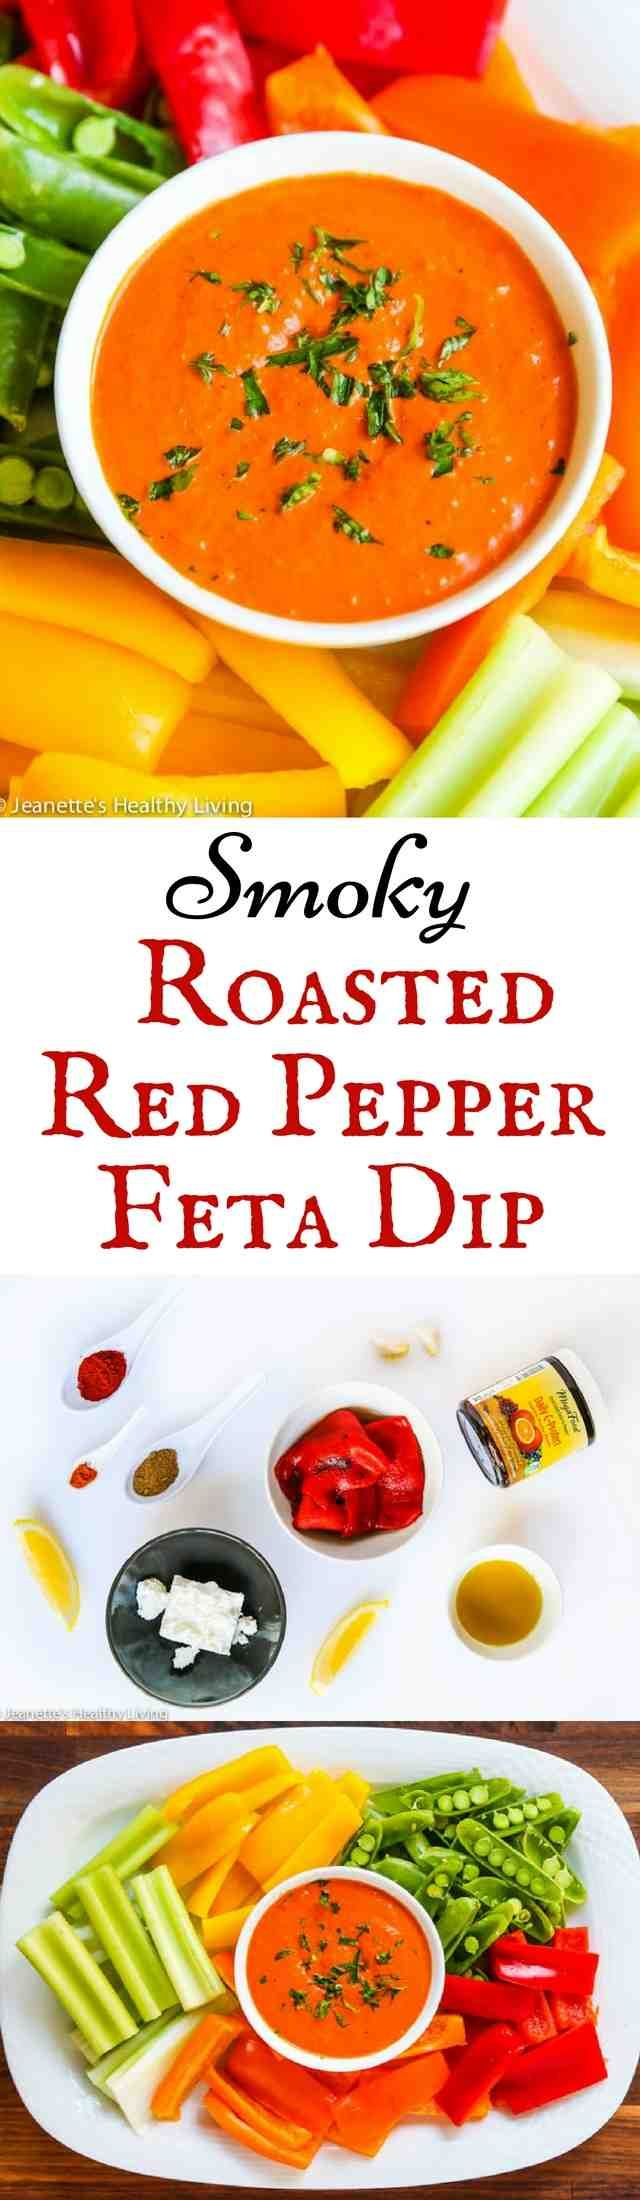 Smoky Roasted Red Pepper Feta Dip - this vibrant healthy dip is immune boosting ~ http://jeanetteshealthyliving.com